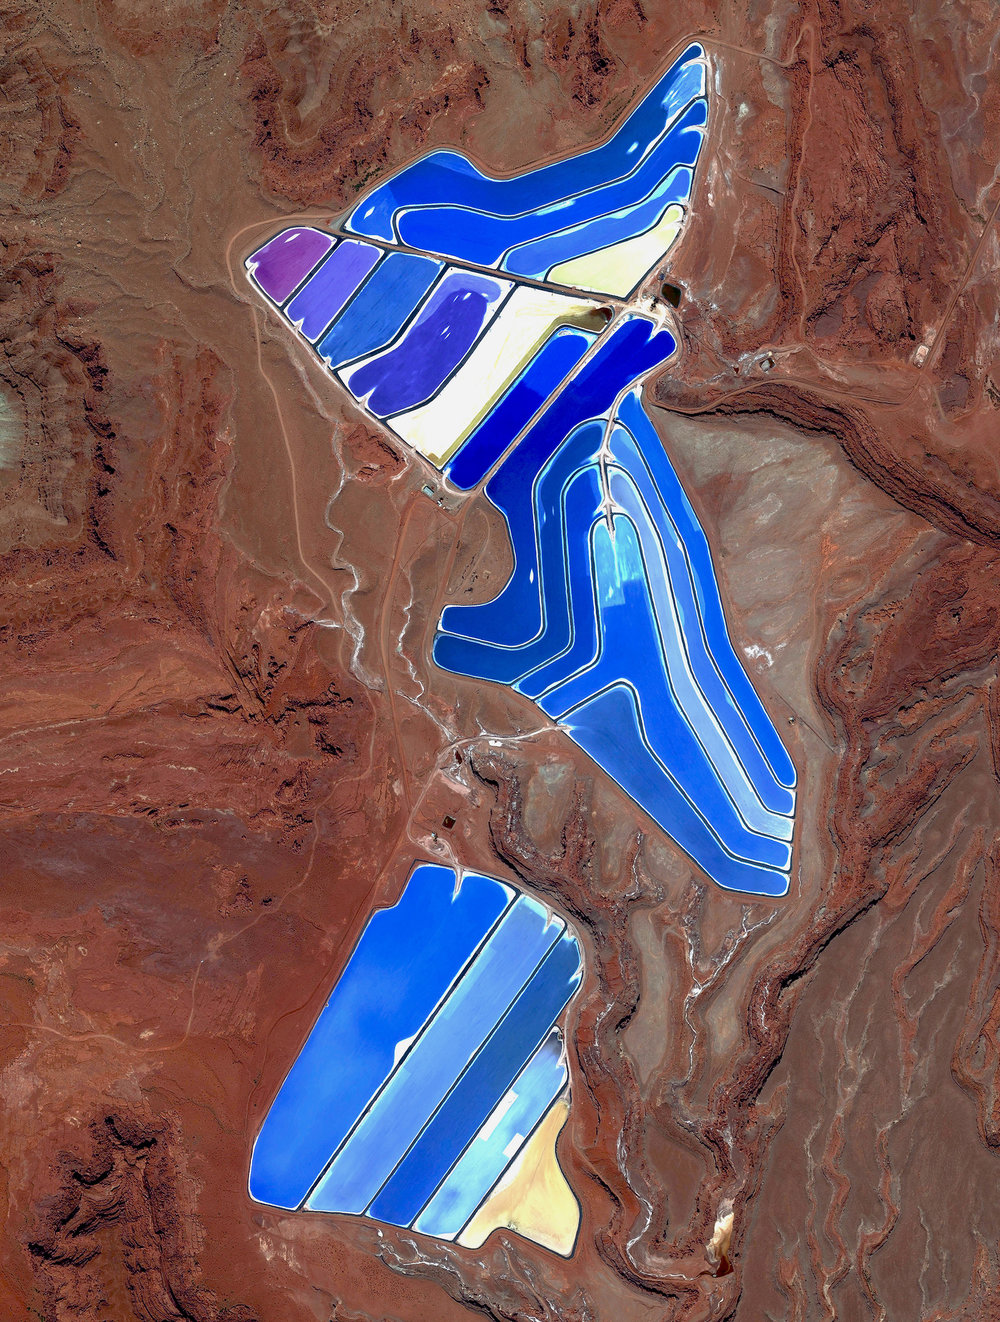 1/18/2017 Moab Evaporation Ponds Moab, Utah, USA 38·485579°, –109·684611°   Evaporation ponds are visible at the potash mine in Moab, Utah, USA. The mine produces muriate of potash, a potassium-containing salt that is a major component in fertilizers. The salt is pumped to the surface from underground brines and dried in massive solar ponds that vibrantly extend across the landscape. As the water evaporates over the course of 300 days, the salts crystallize out. The blue color seen here occurs because the water is dyed a deep blue, as darker water absorbs more sunlight and heat, thereby reducing the amount of time it takes for the water to evaporate and the potash to crystallize. This image was also just featured in a fantastic interview by Perrie Hartz at Indigare Magazine. You can check it out here.